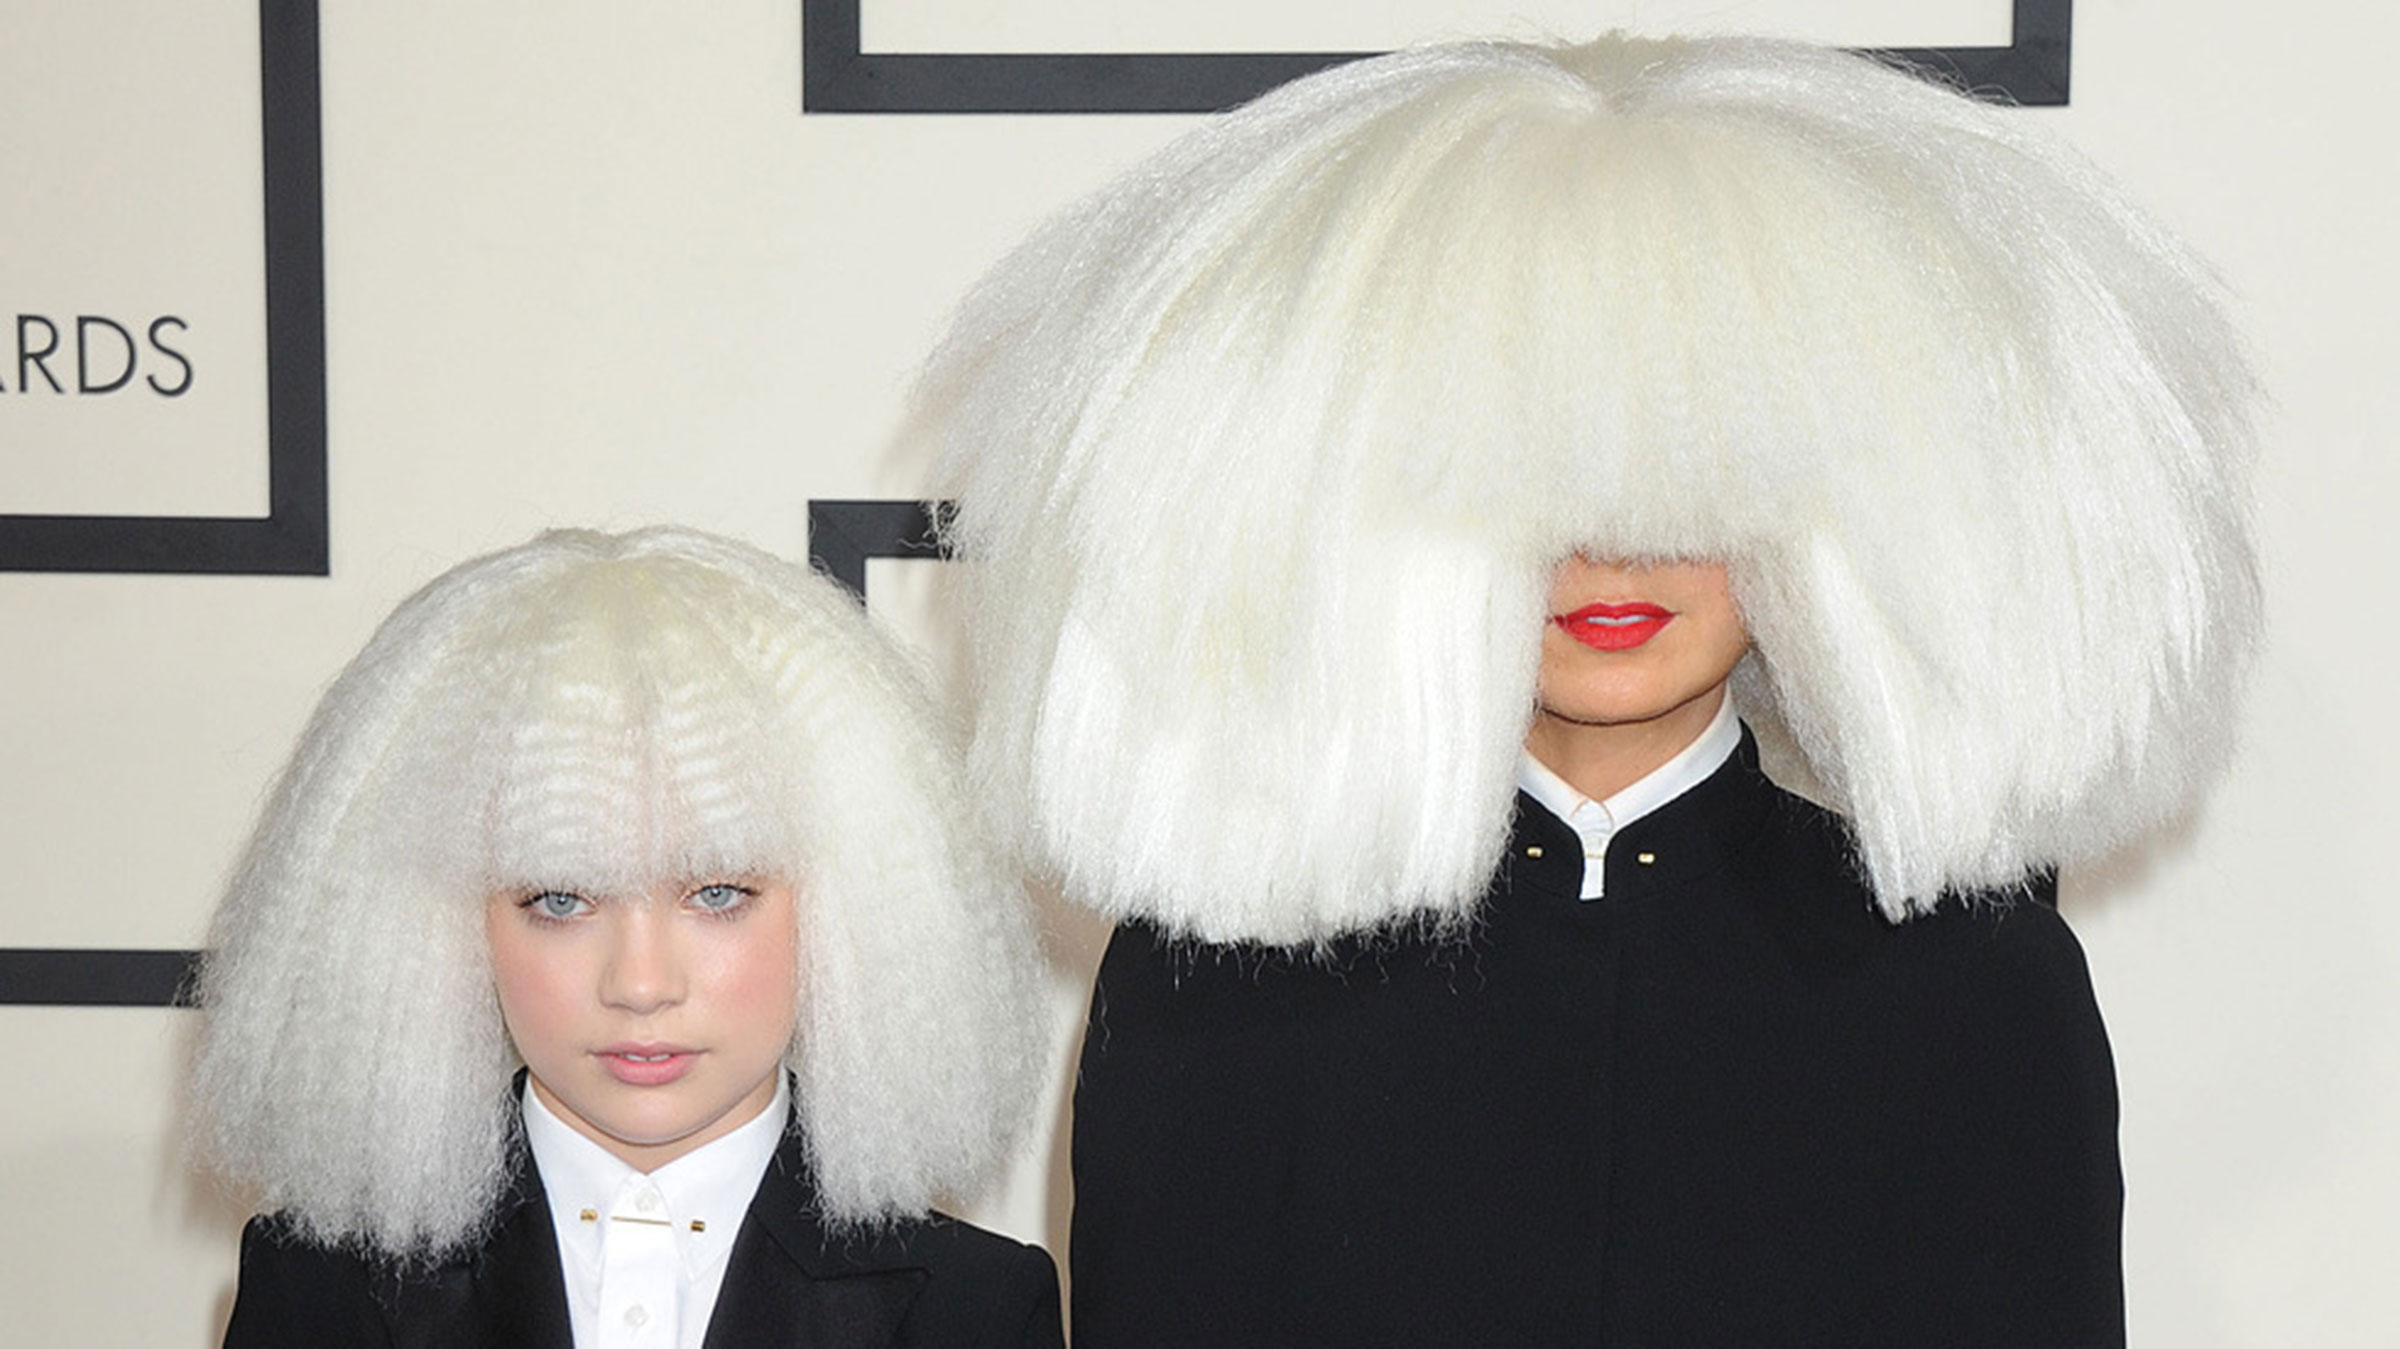 Sia grammy awards 2015